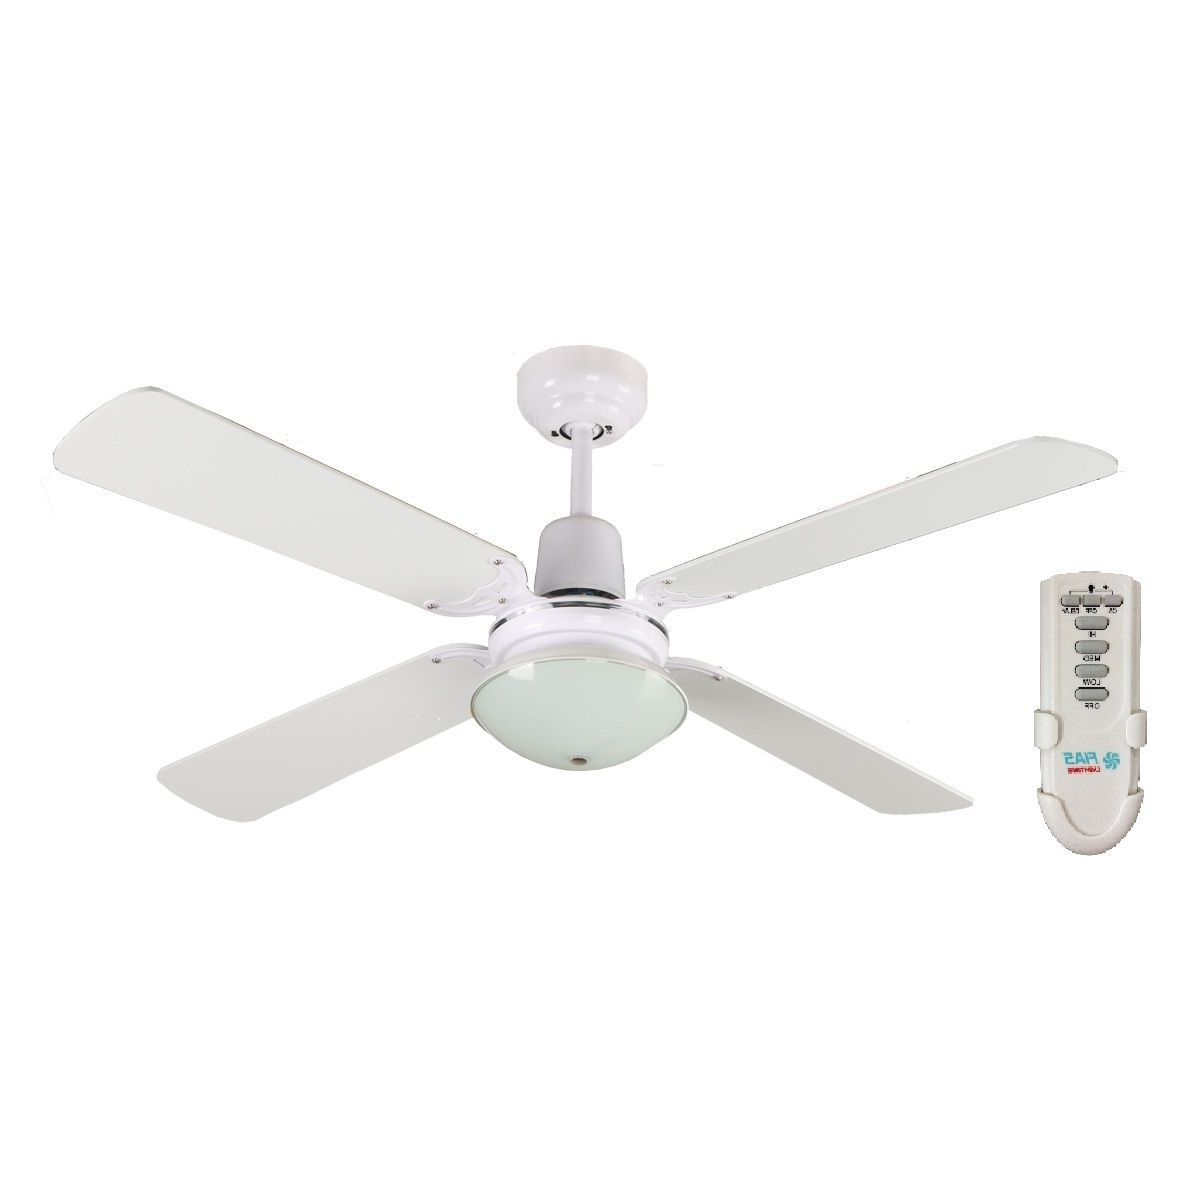 Outdoor Ceiling Fans At Bunnings For Popular Martec Ceiling Fans Bunnings (View 13 of 20)